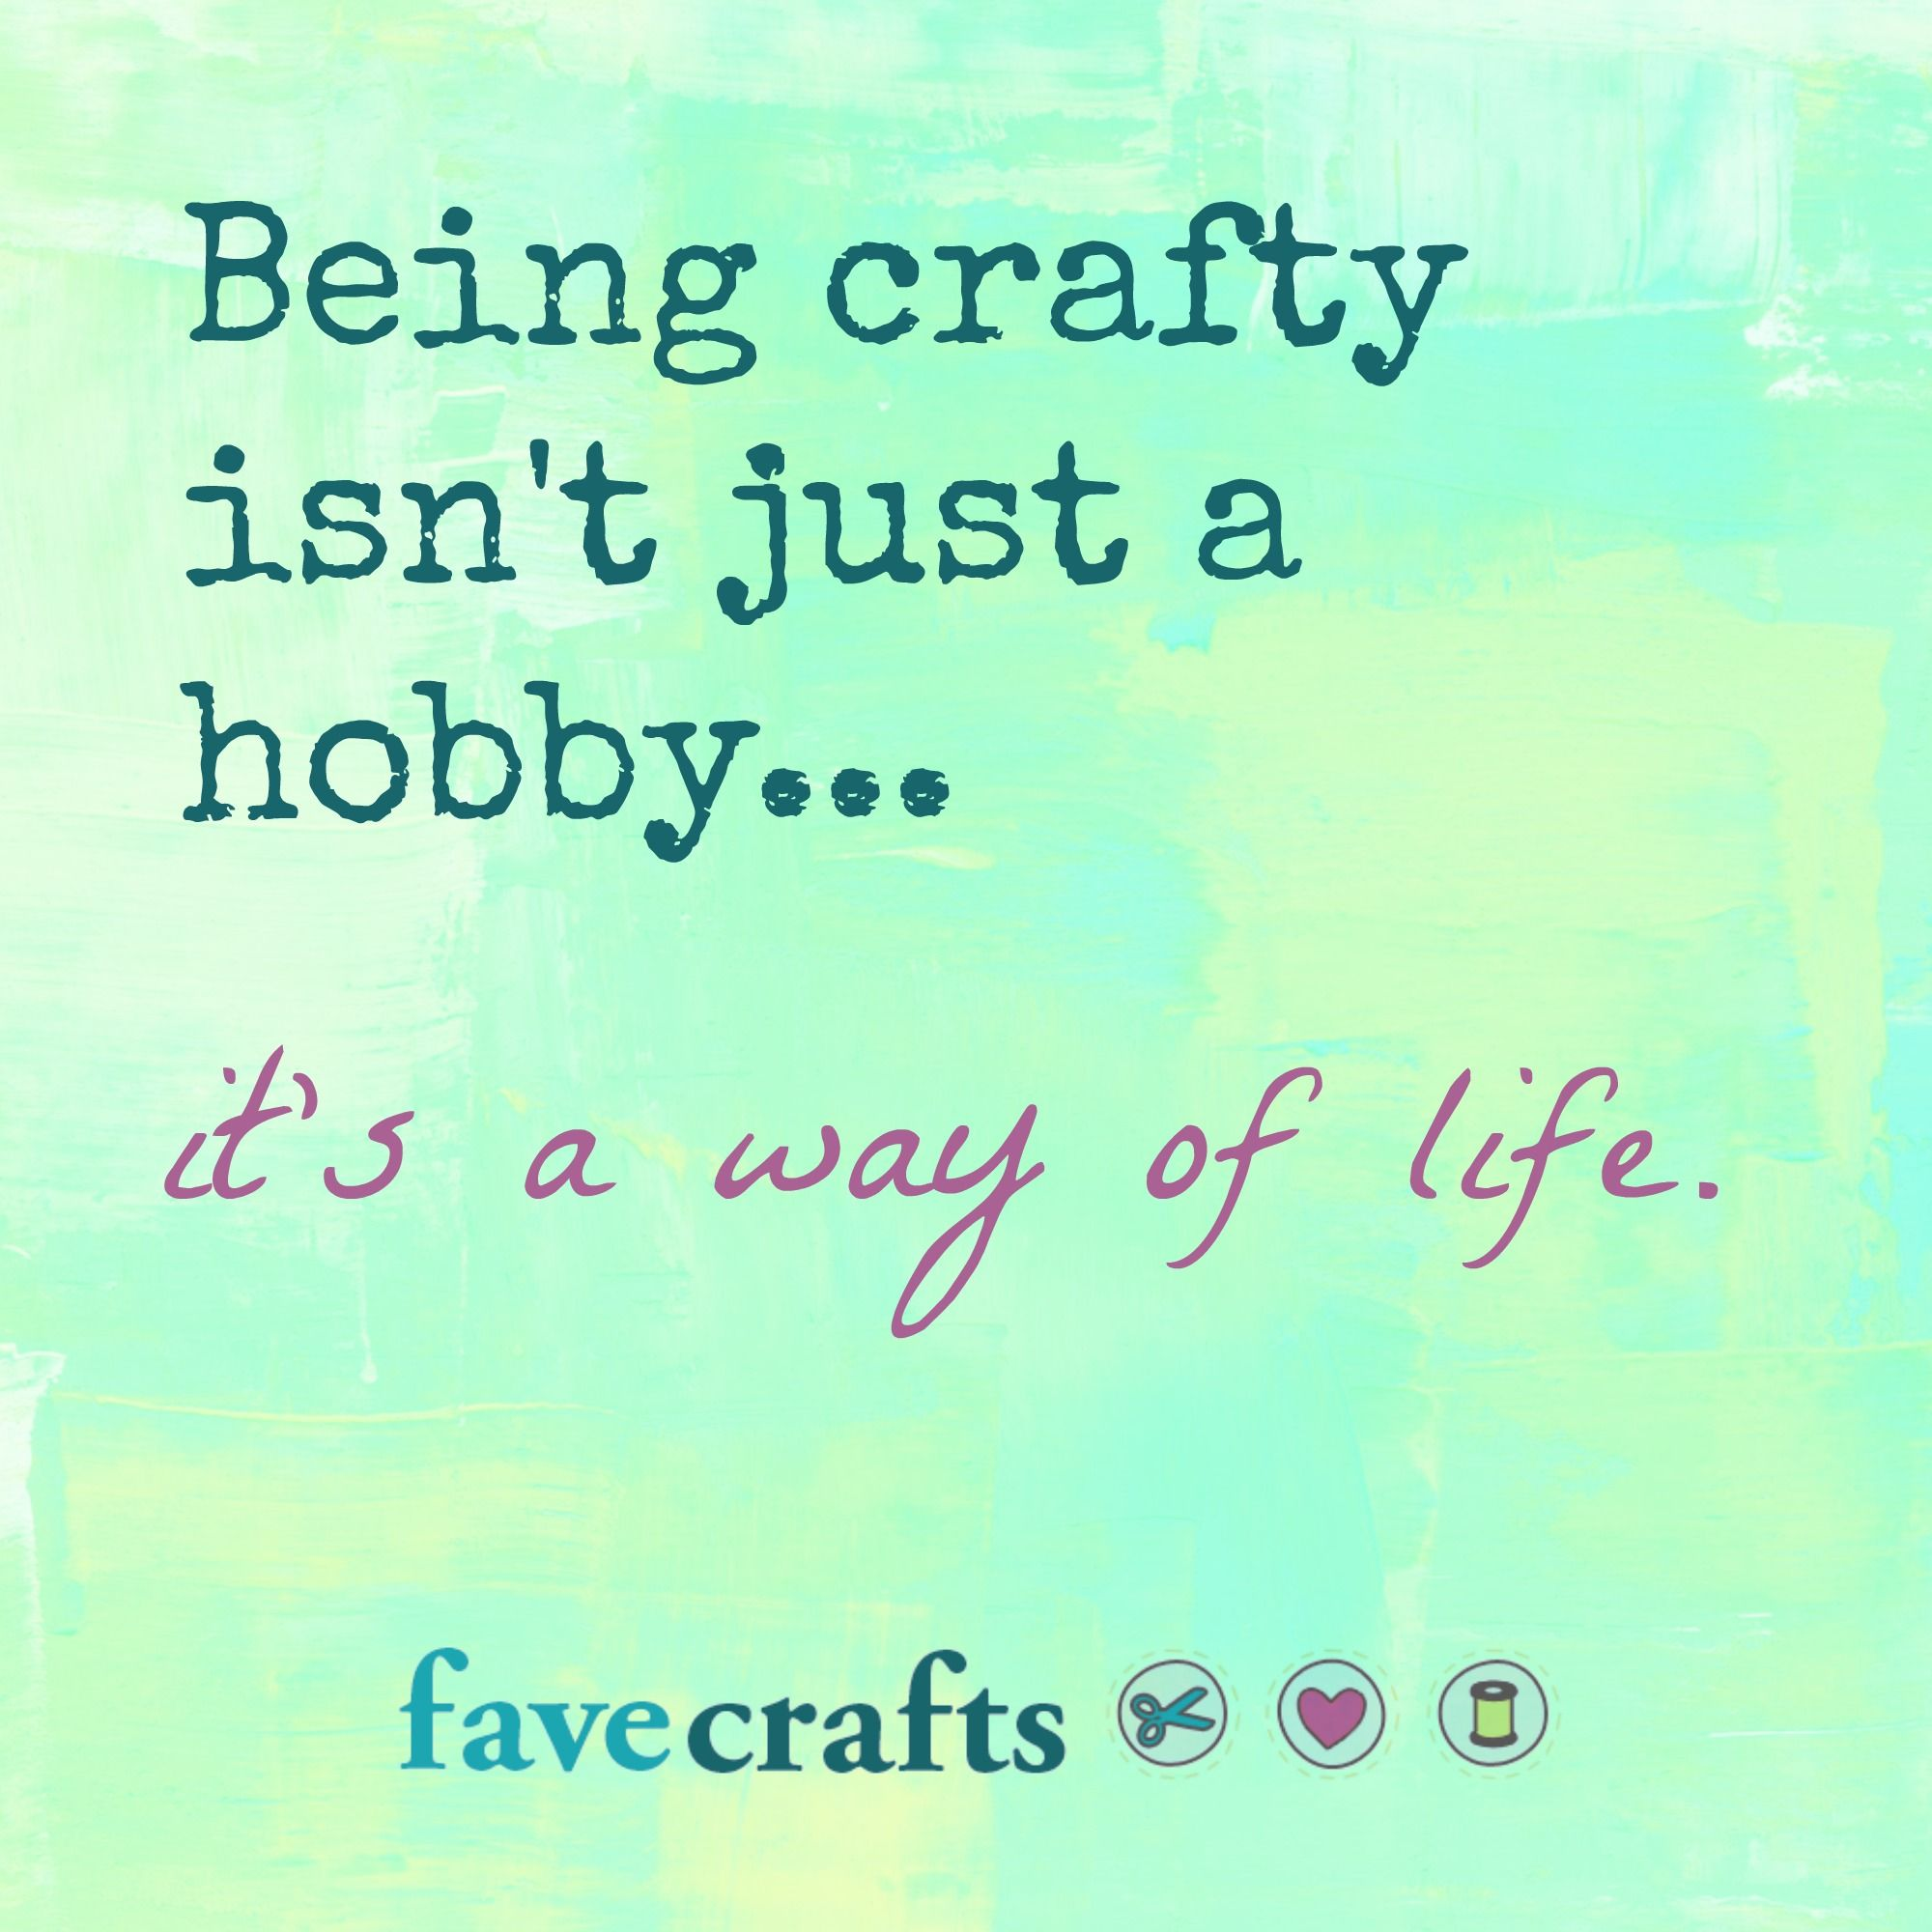 FaveCrafts – 1000s of Free Craft Projects, Patterns, and More